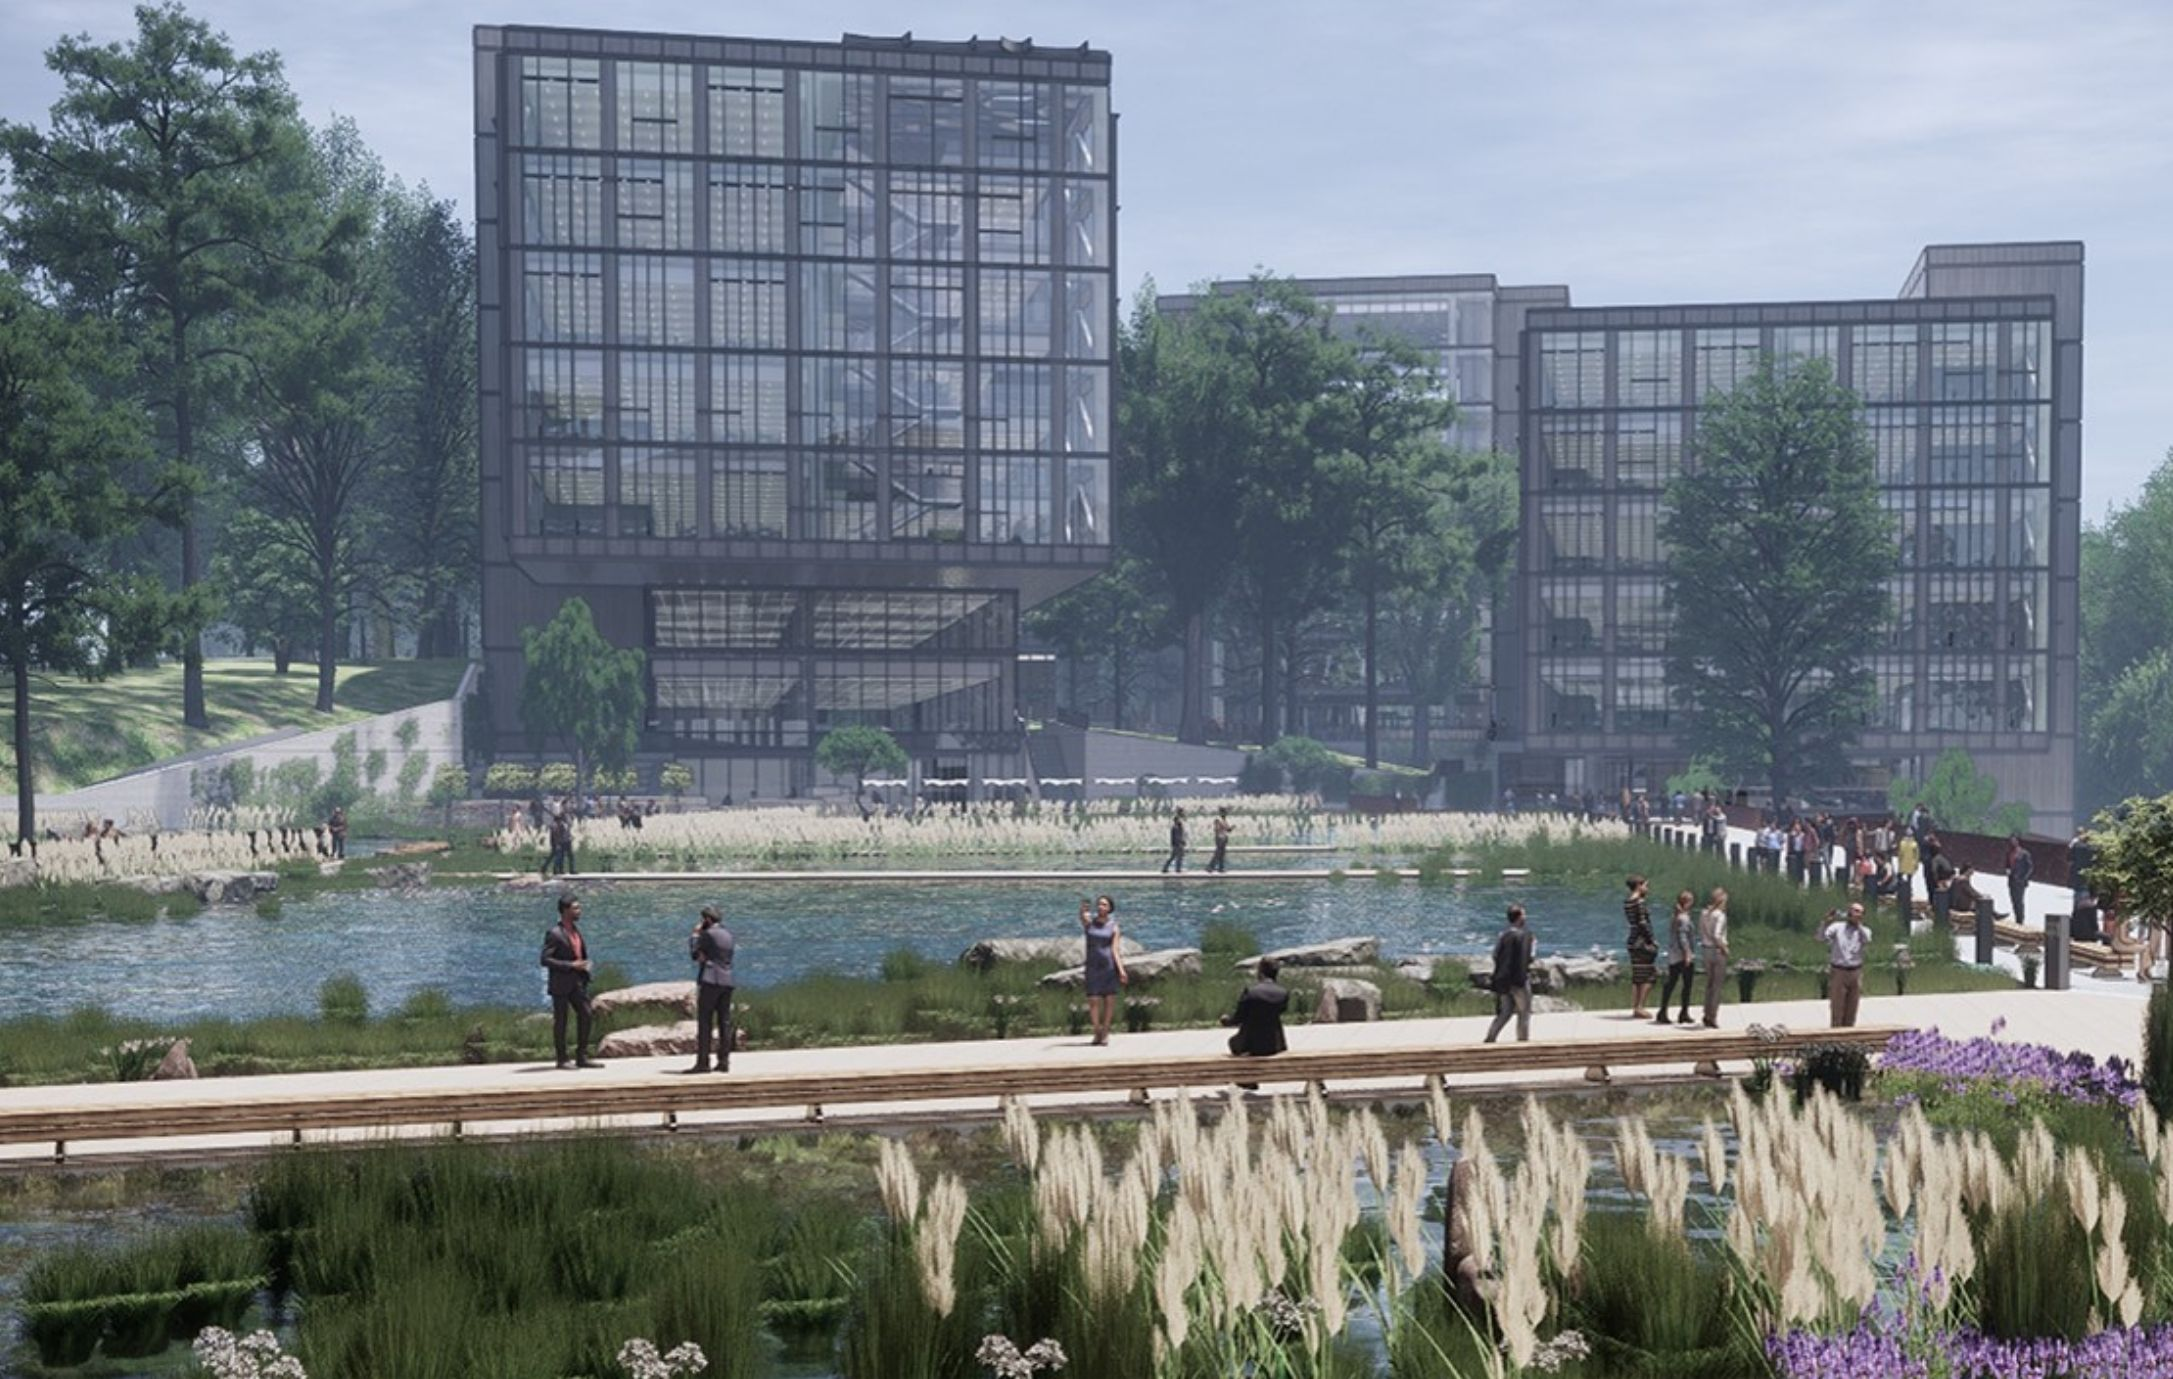 Centene's Innovations Center outdoor view of beautiful glass building overlooking pond